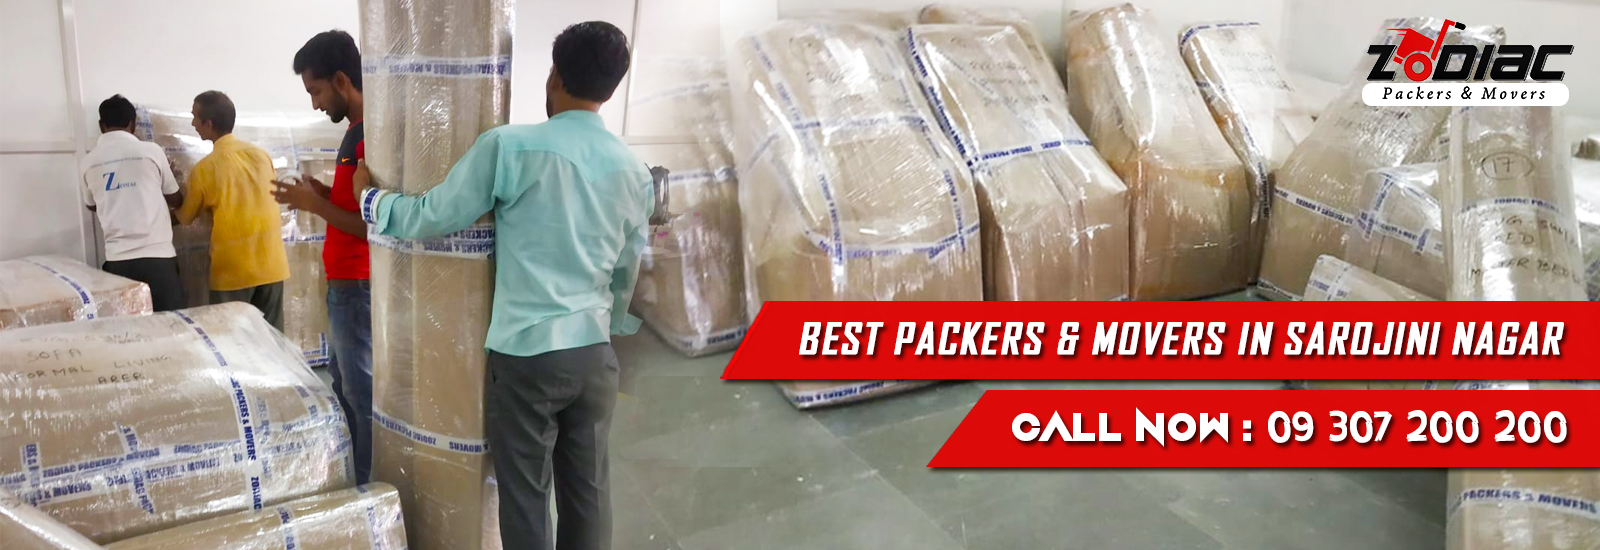 Packers and Movers in Sarojini Nagar